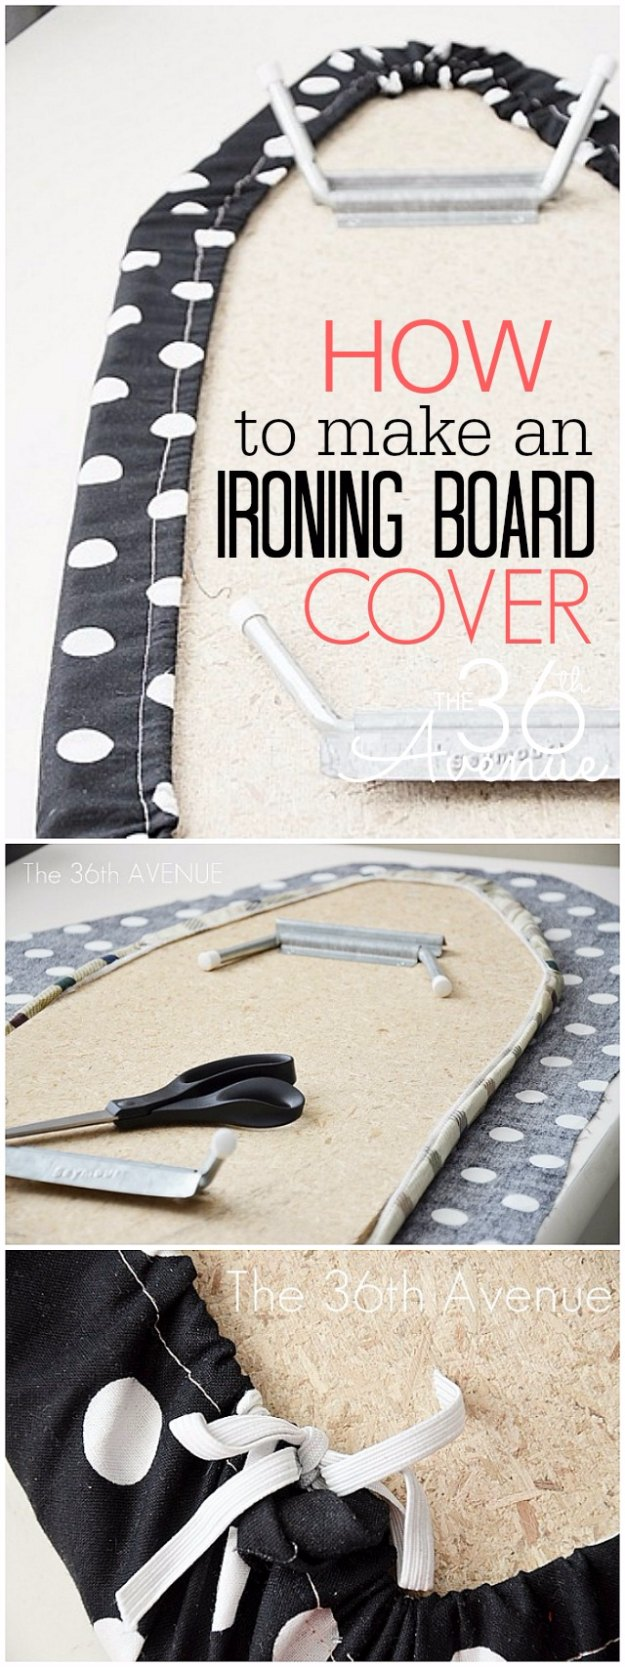 Sewing Projects for The Home - How To Make An Ironing Board Cover - Free DIY Sewing Patterns, Easy Ideas and Tutorials for Curtains, Upholstery, Napkins, Pillows and Decor #homedecor #diy #sewing